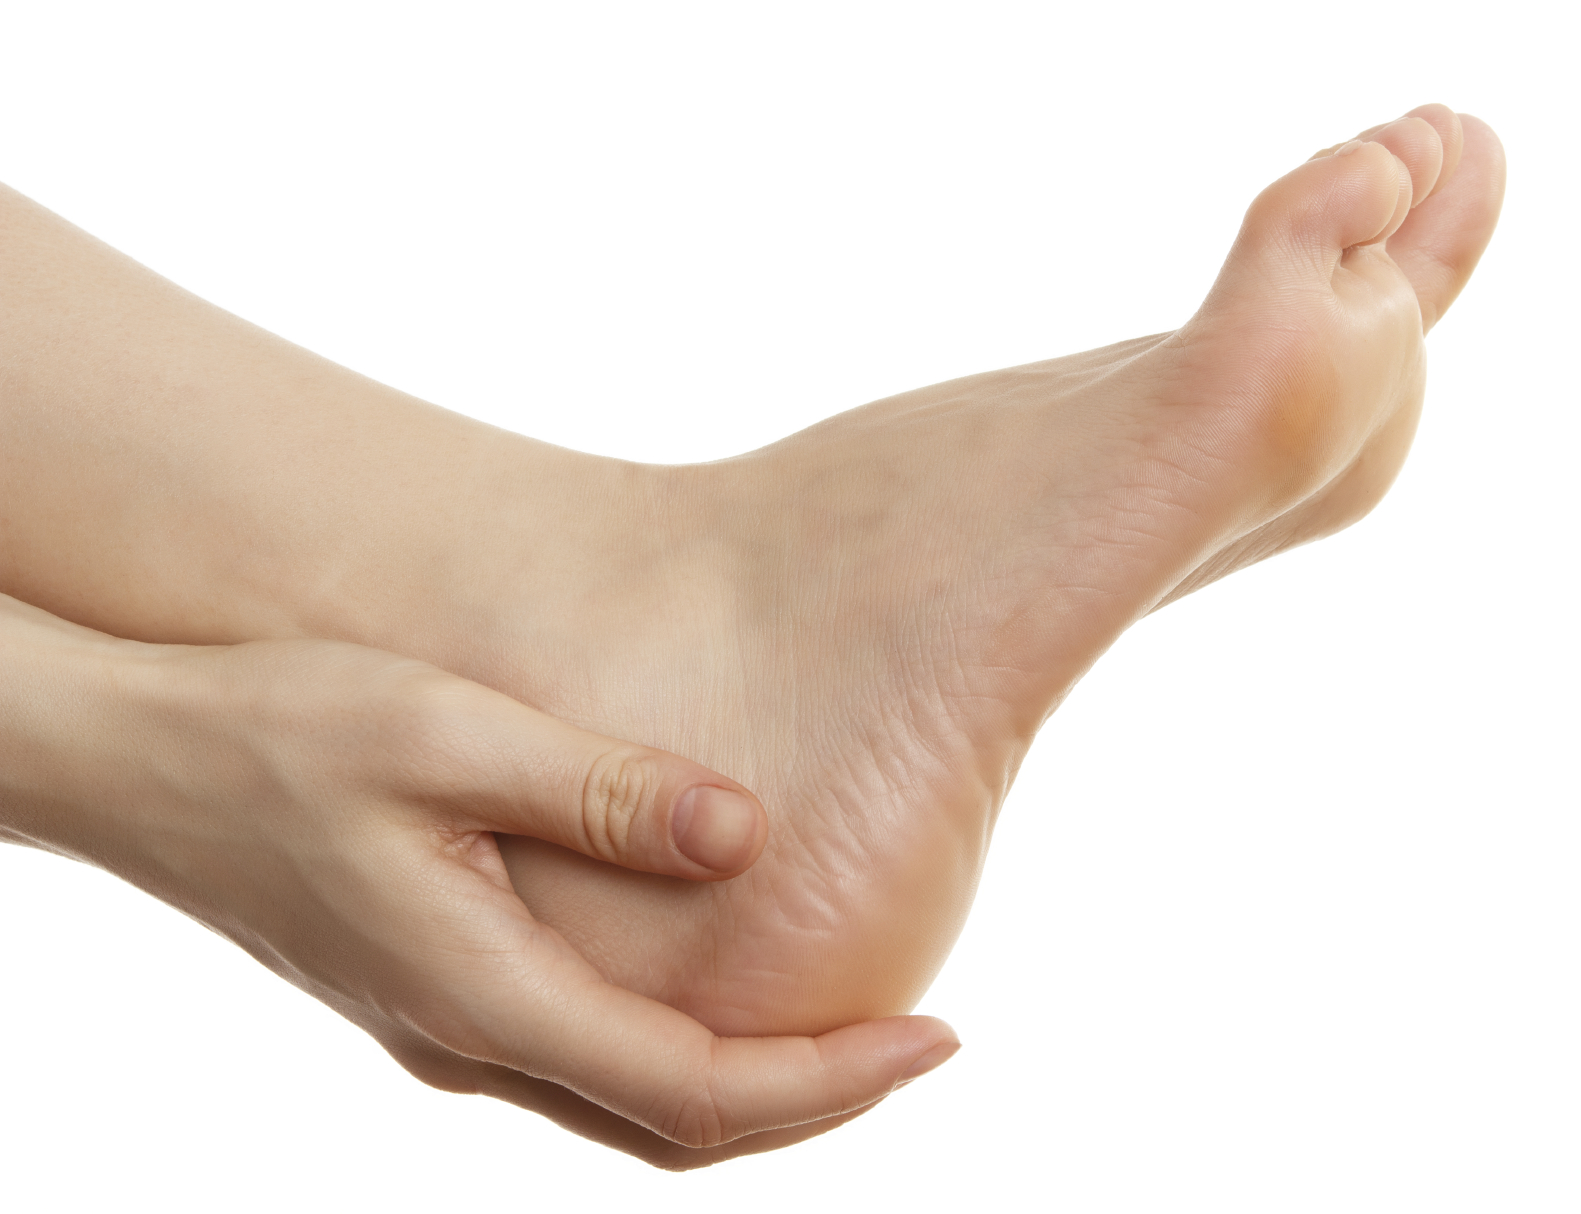 Osteopathy helps relieve tendinitis